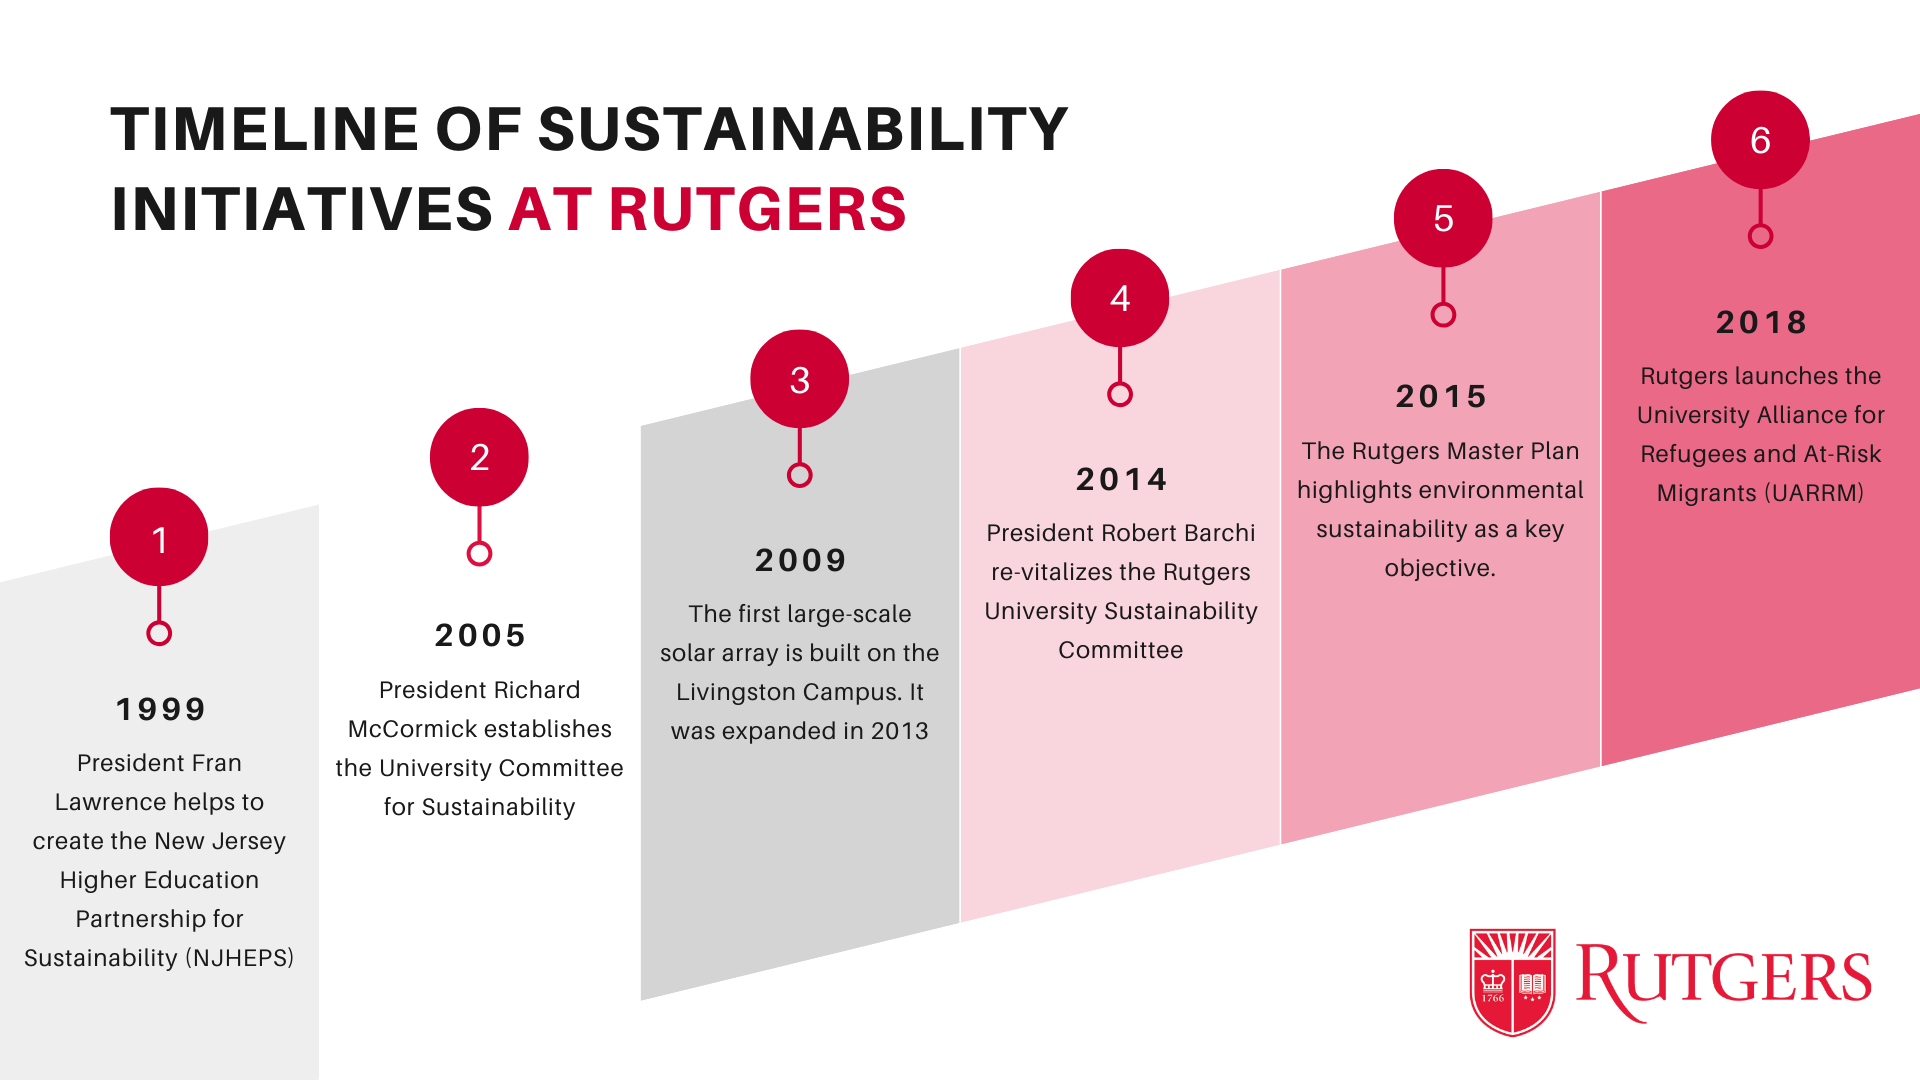 Timeline of Sustainability Initiatives at Rutgers